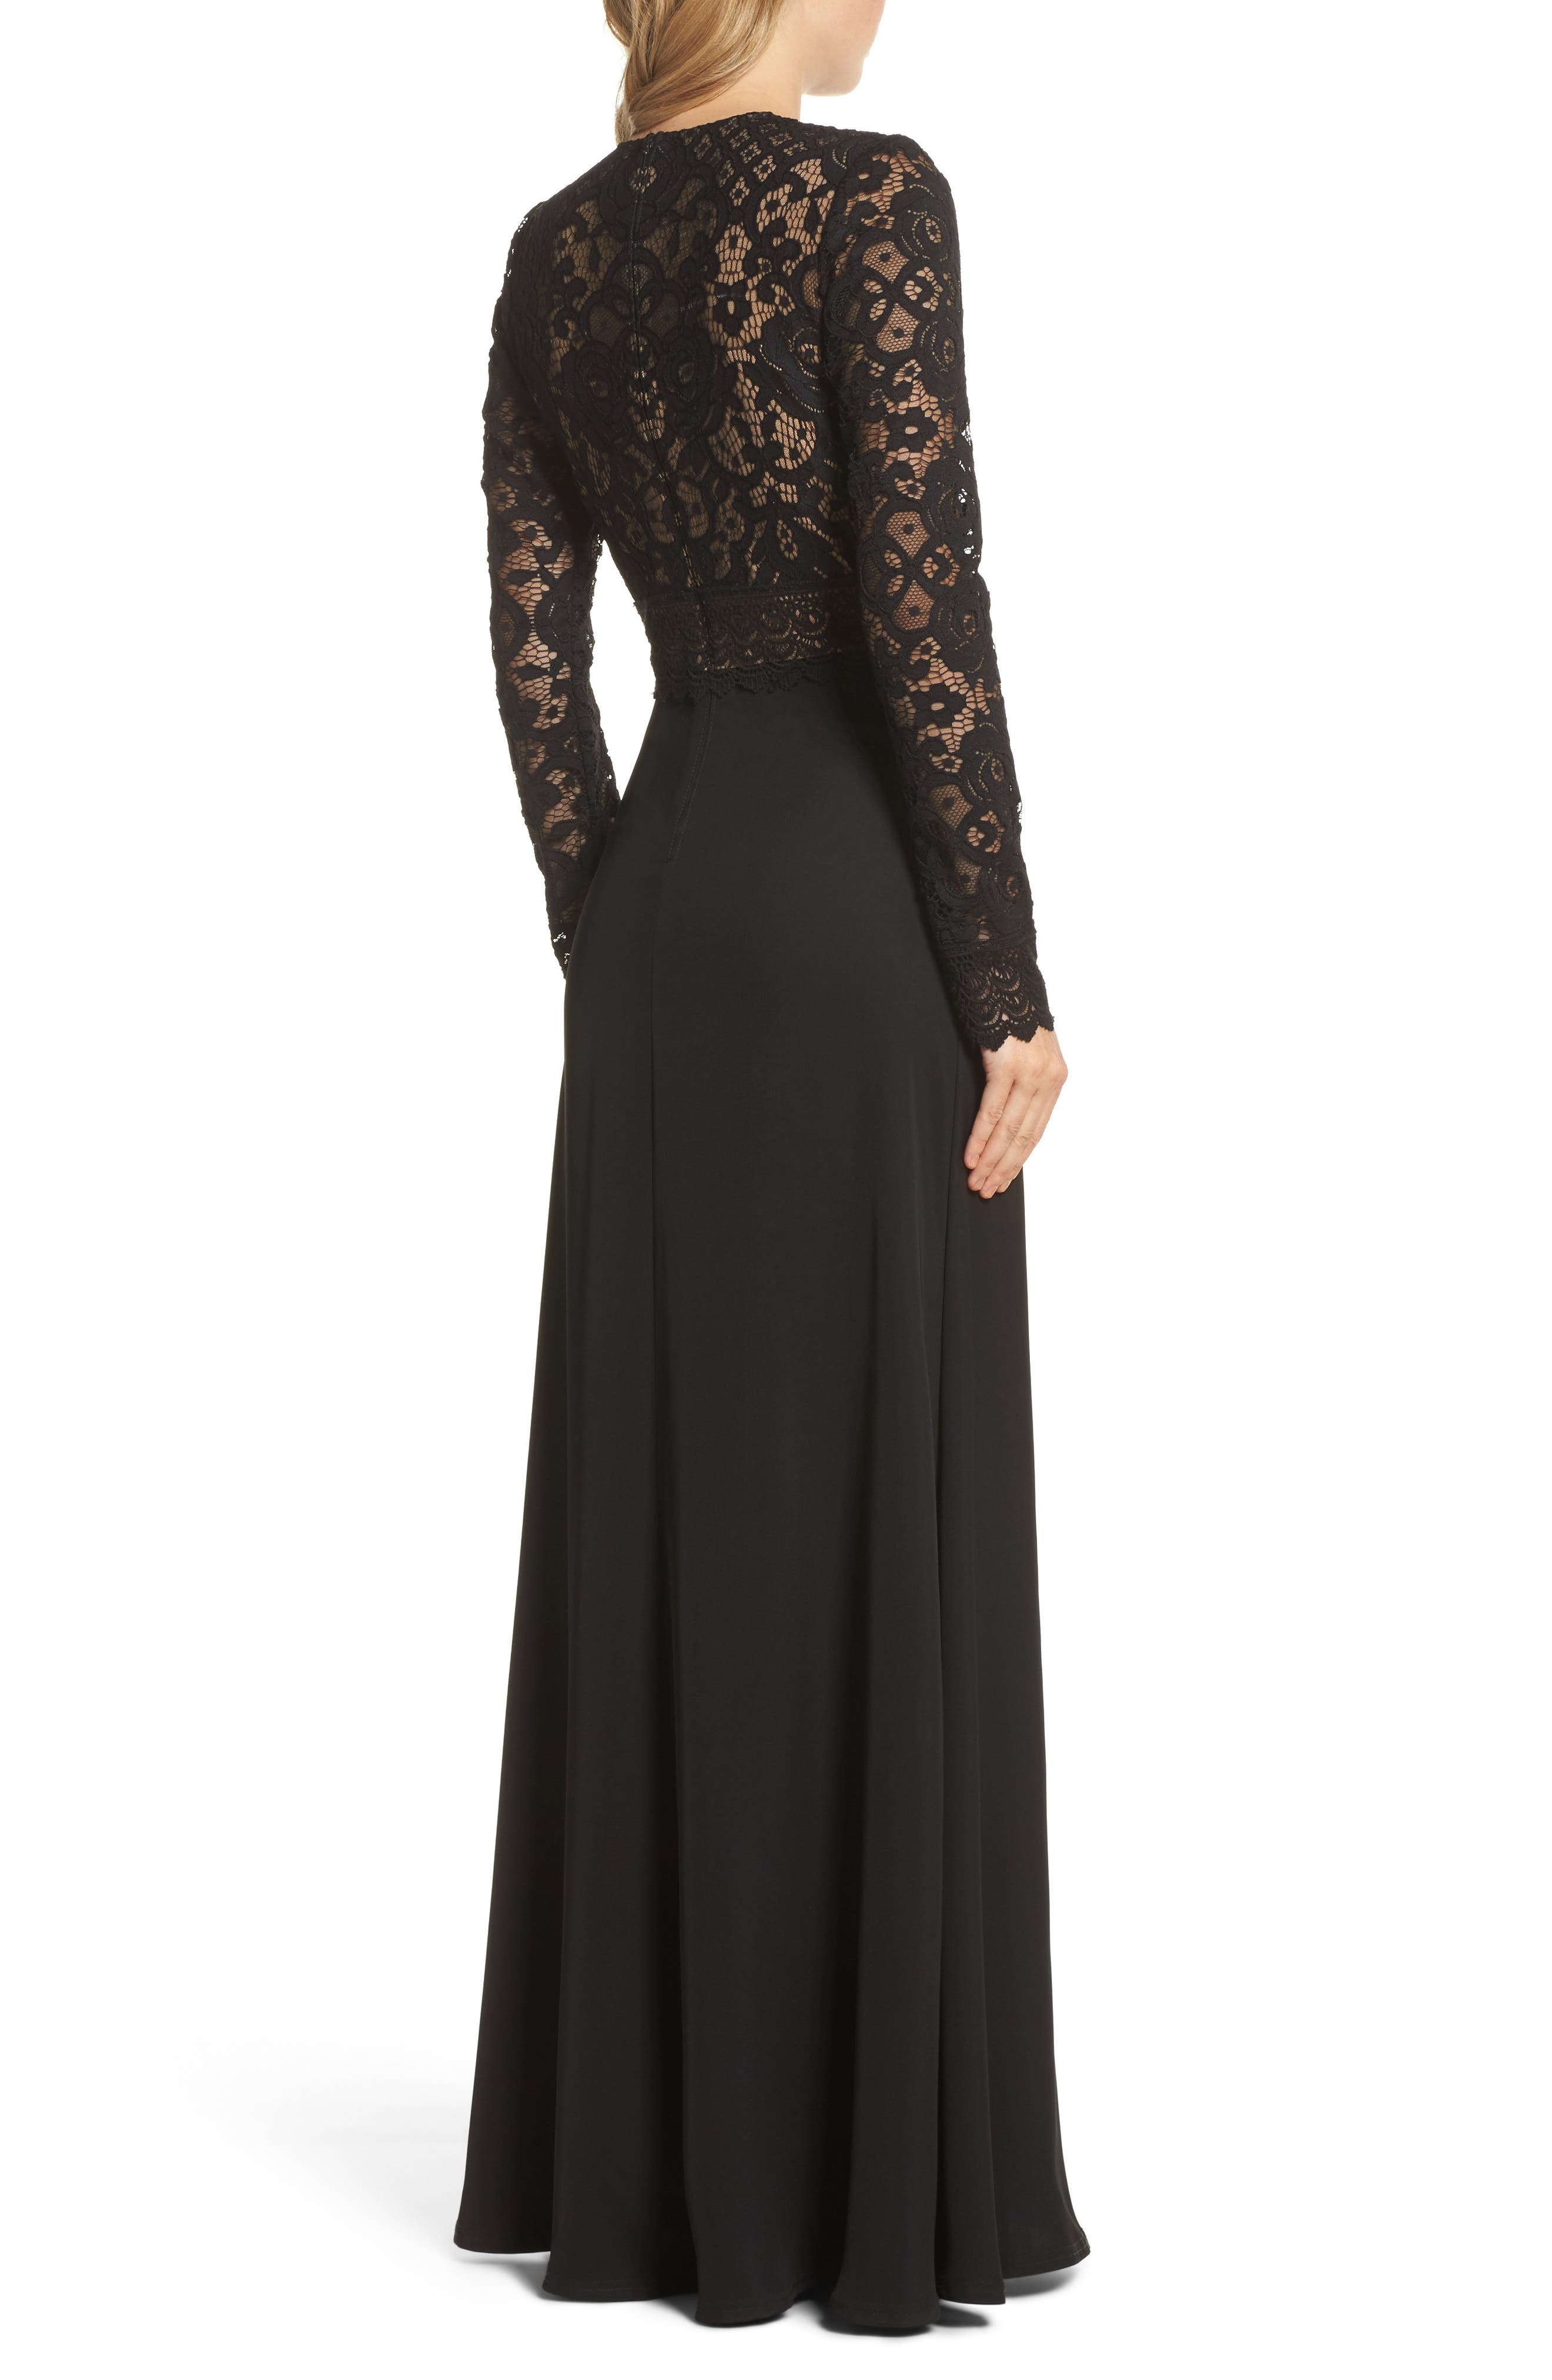 Lace & Crepe Gown,                             Alternate thumbnail 2, color,                             Black/ Nude